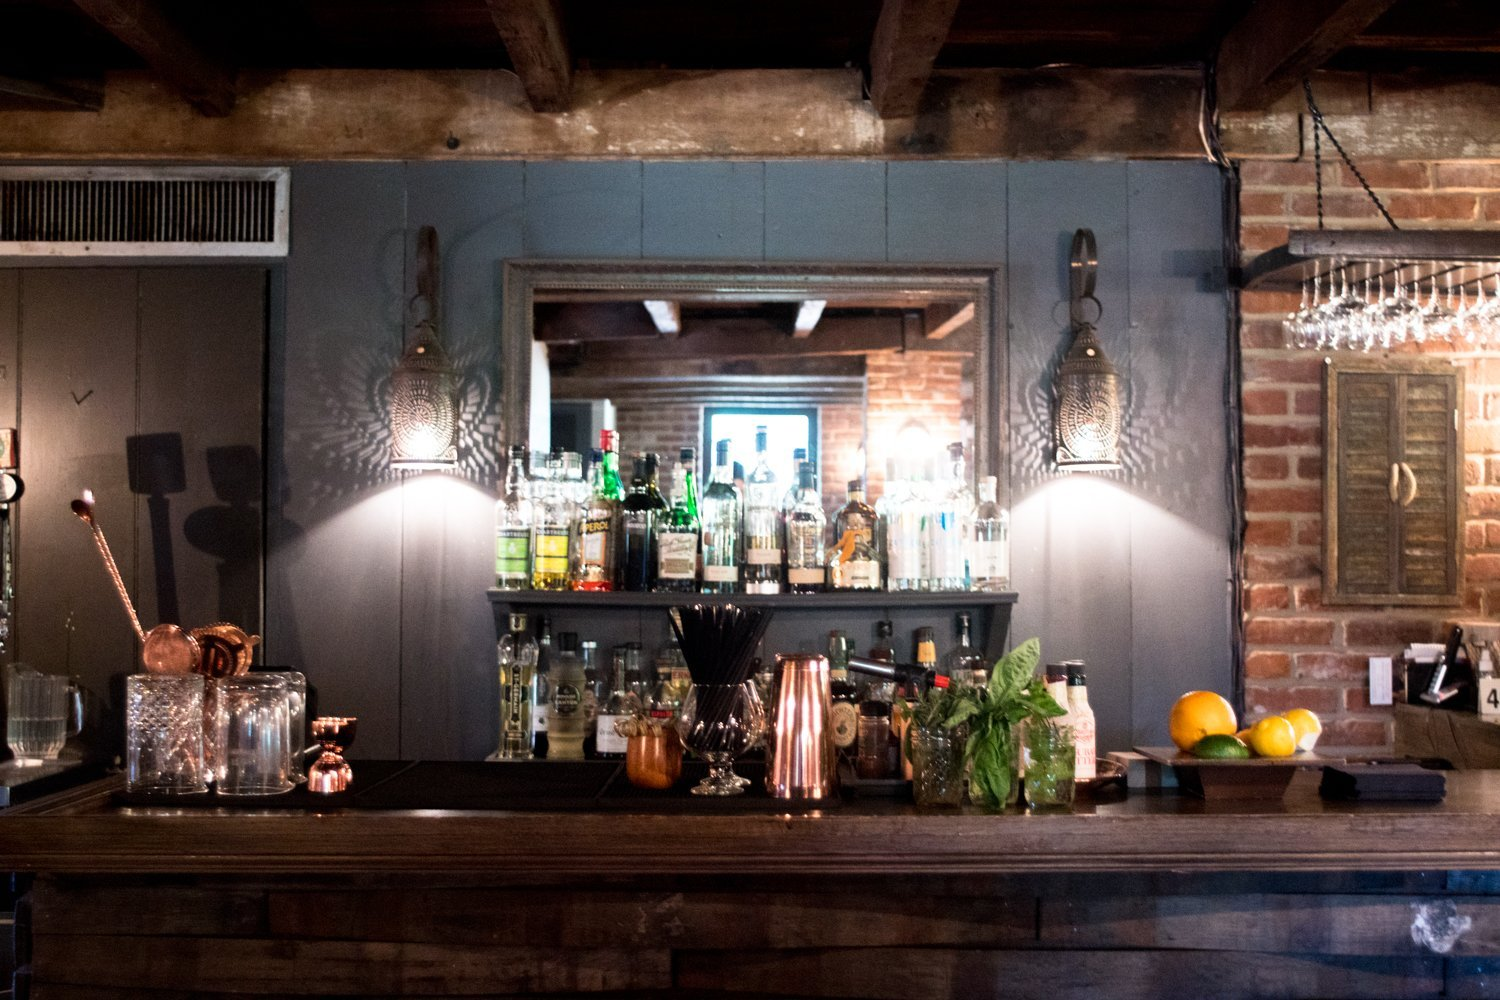 Now known for their mixology of cocktails, this bar specializes in house-distilled rum.